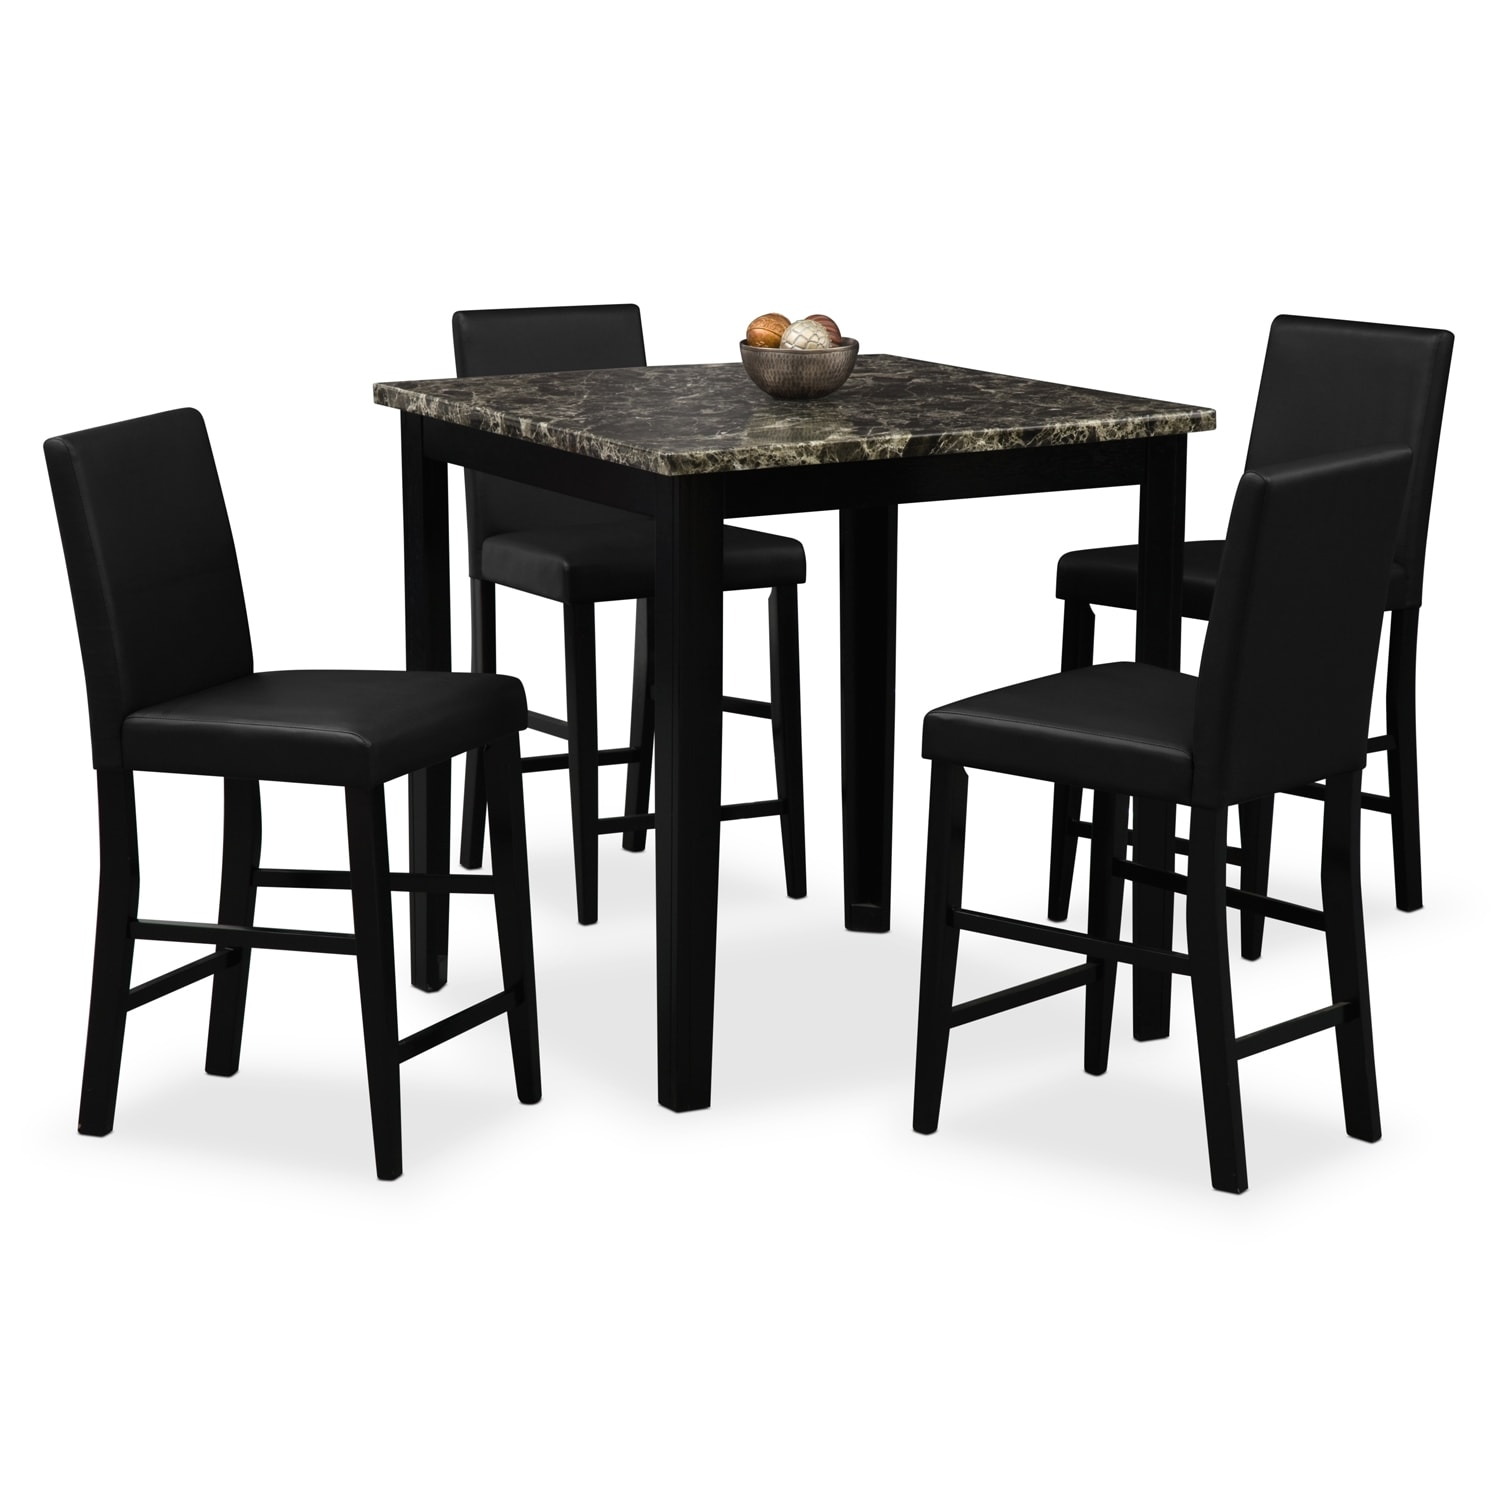 Shadow counter height table and 4 chairs black value for Black dining room chairs